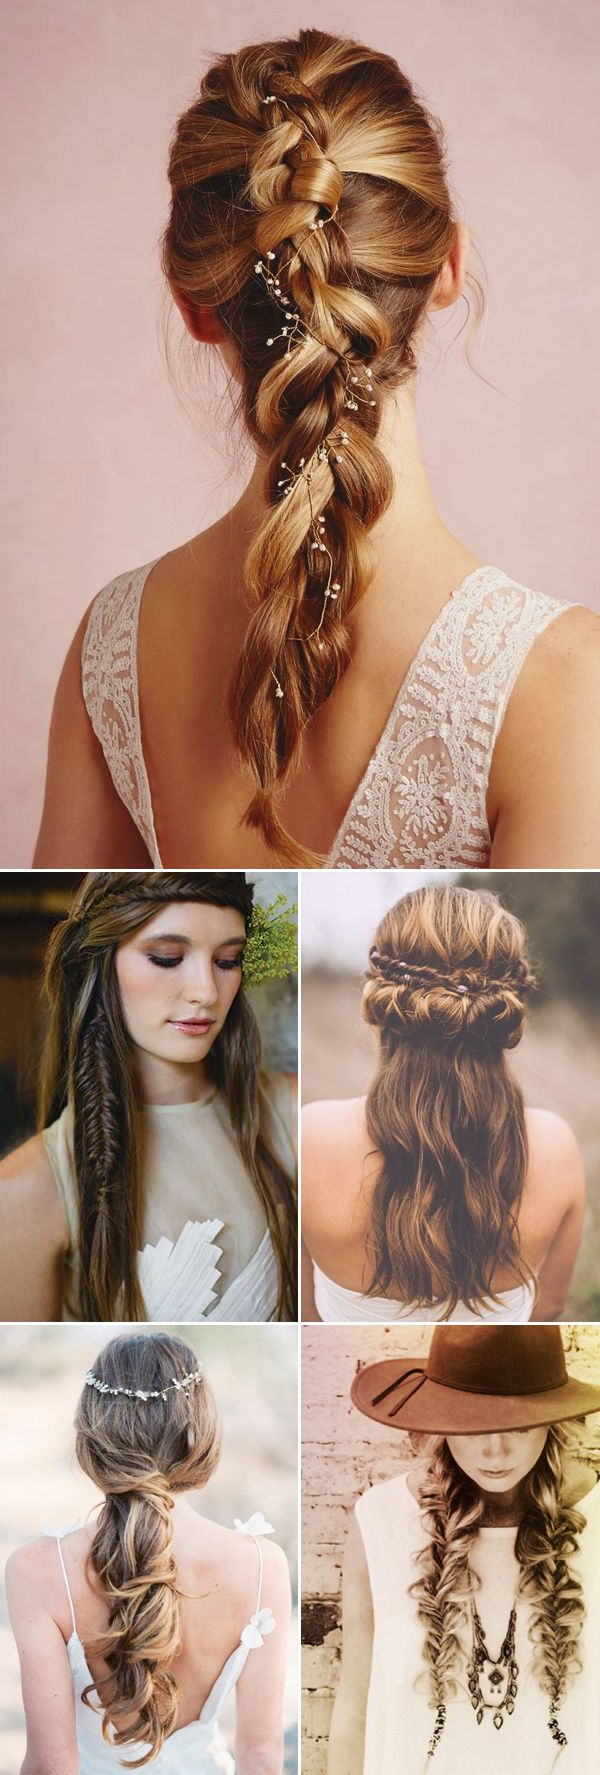 30 Boho Chic Hairstyles For 2019 – Pretty Designs In Trendy Chic Bohemian Braid Hairstyles (View 15 of 20)